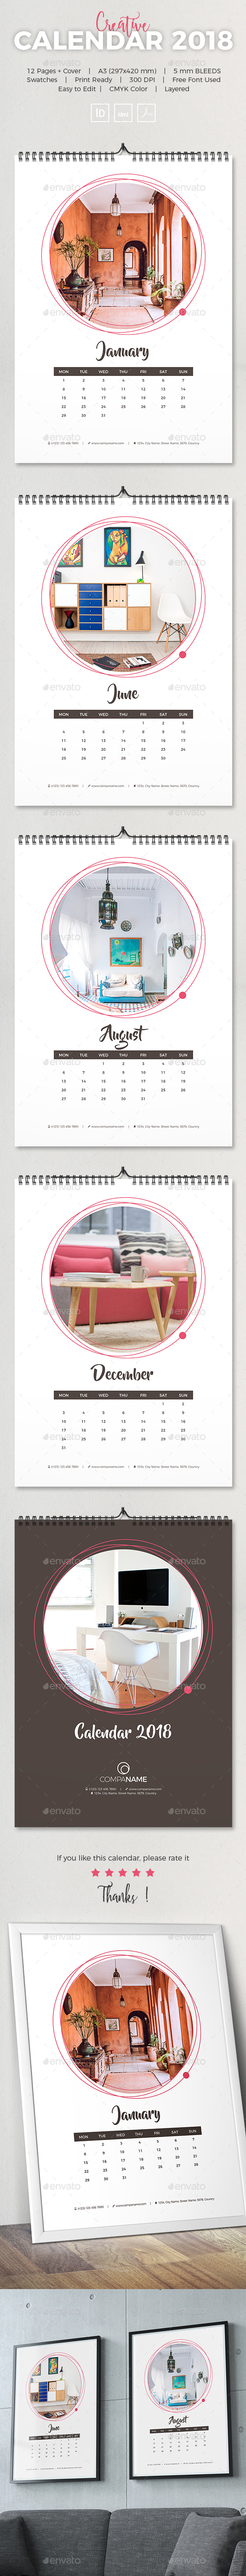 2018 Creative Calendar - Calendars Stationery